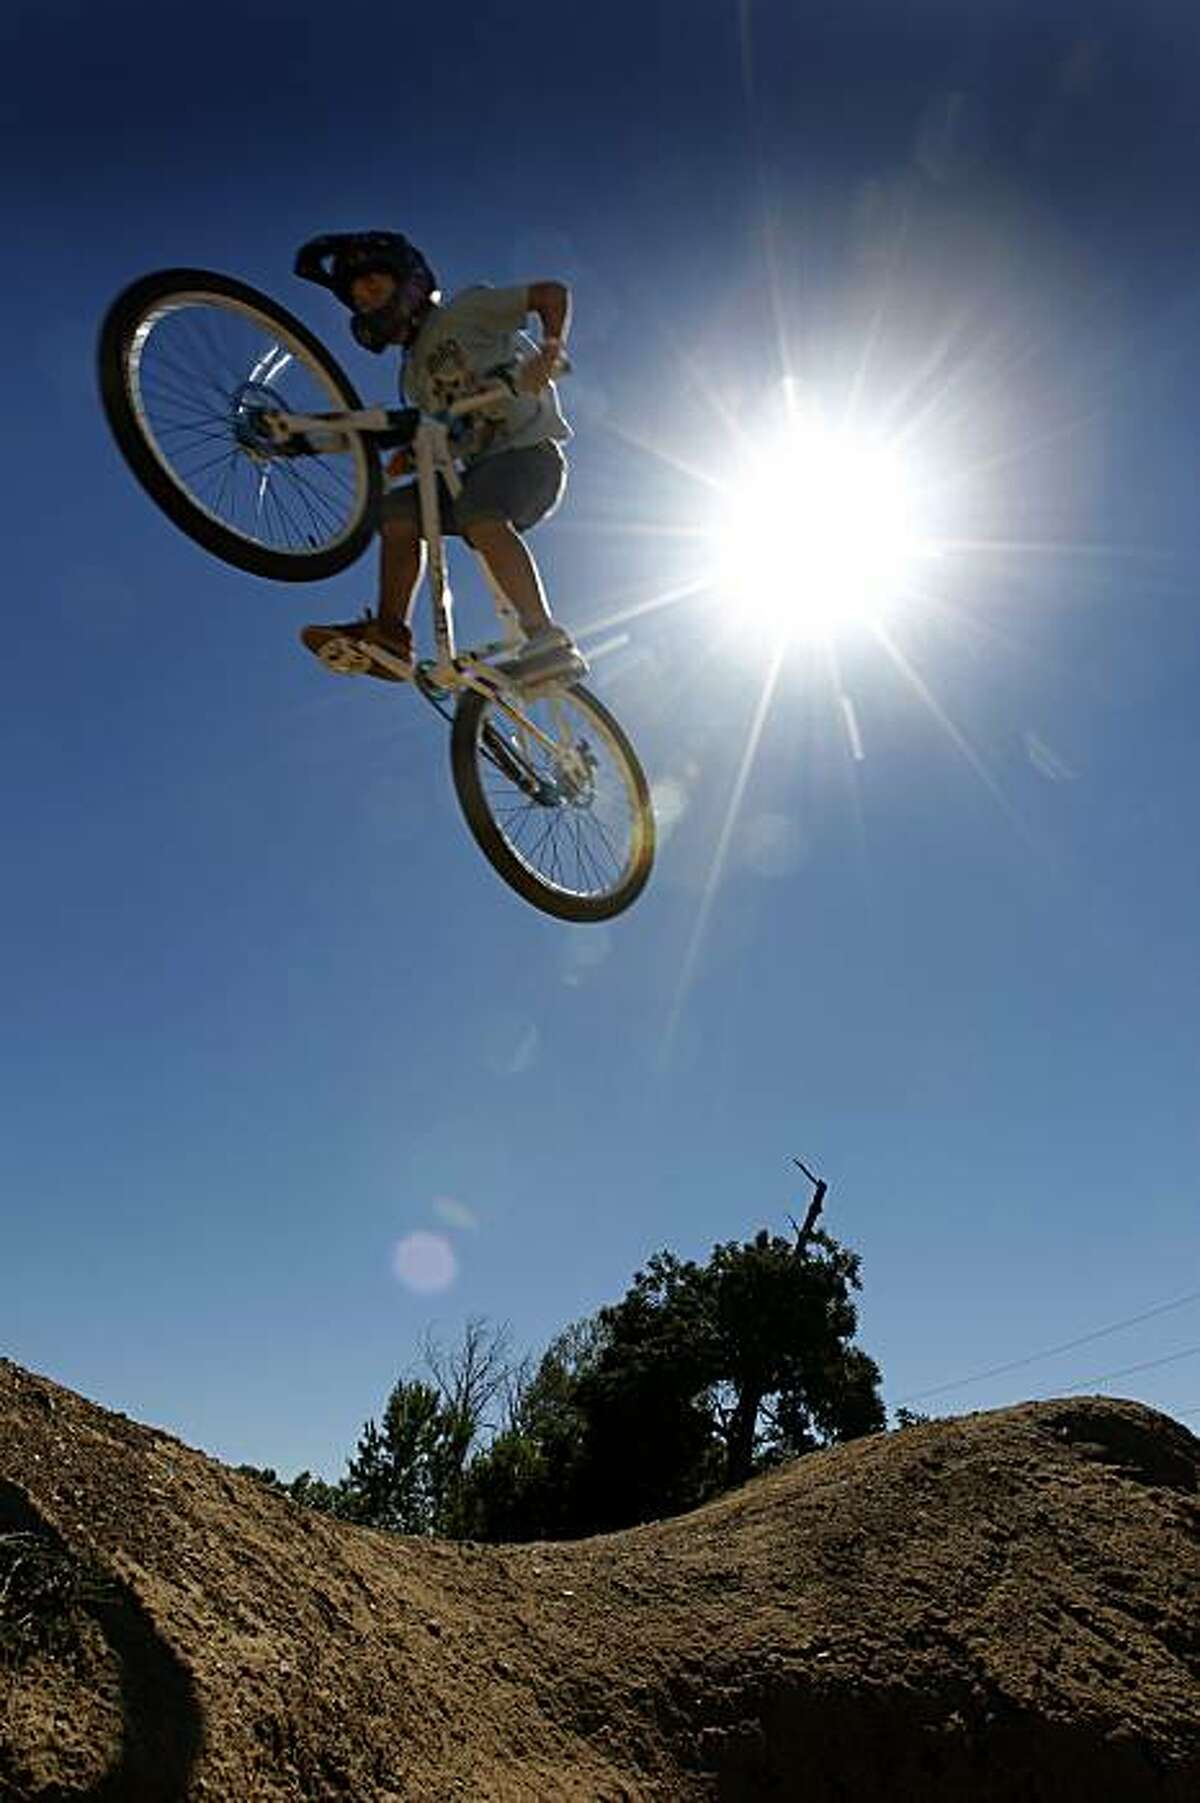 Flying High - 2:55 p.m. - Pleasanton. I had some time to kill before a photo shoot and came across bicyclists performing acrobatic maneuvers at a BMX park near Shadow Cliffs Regional Park in Pleasanton. Because of early deadlines for the Sunday Chronicle, it was too late to offer this to the print edition so this young lad's feat will have to remain in cyberspace. Camera settings: Canon EOS-1D MkiV, ISO 200, 1/320, f13, 16mm.